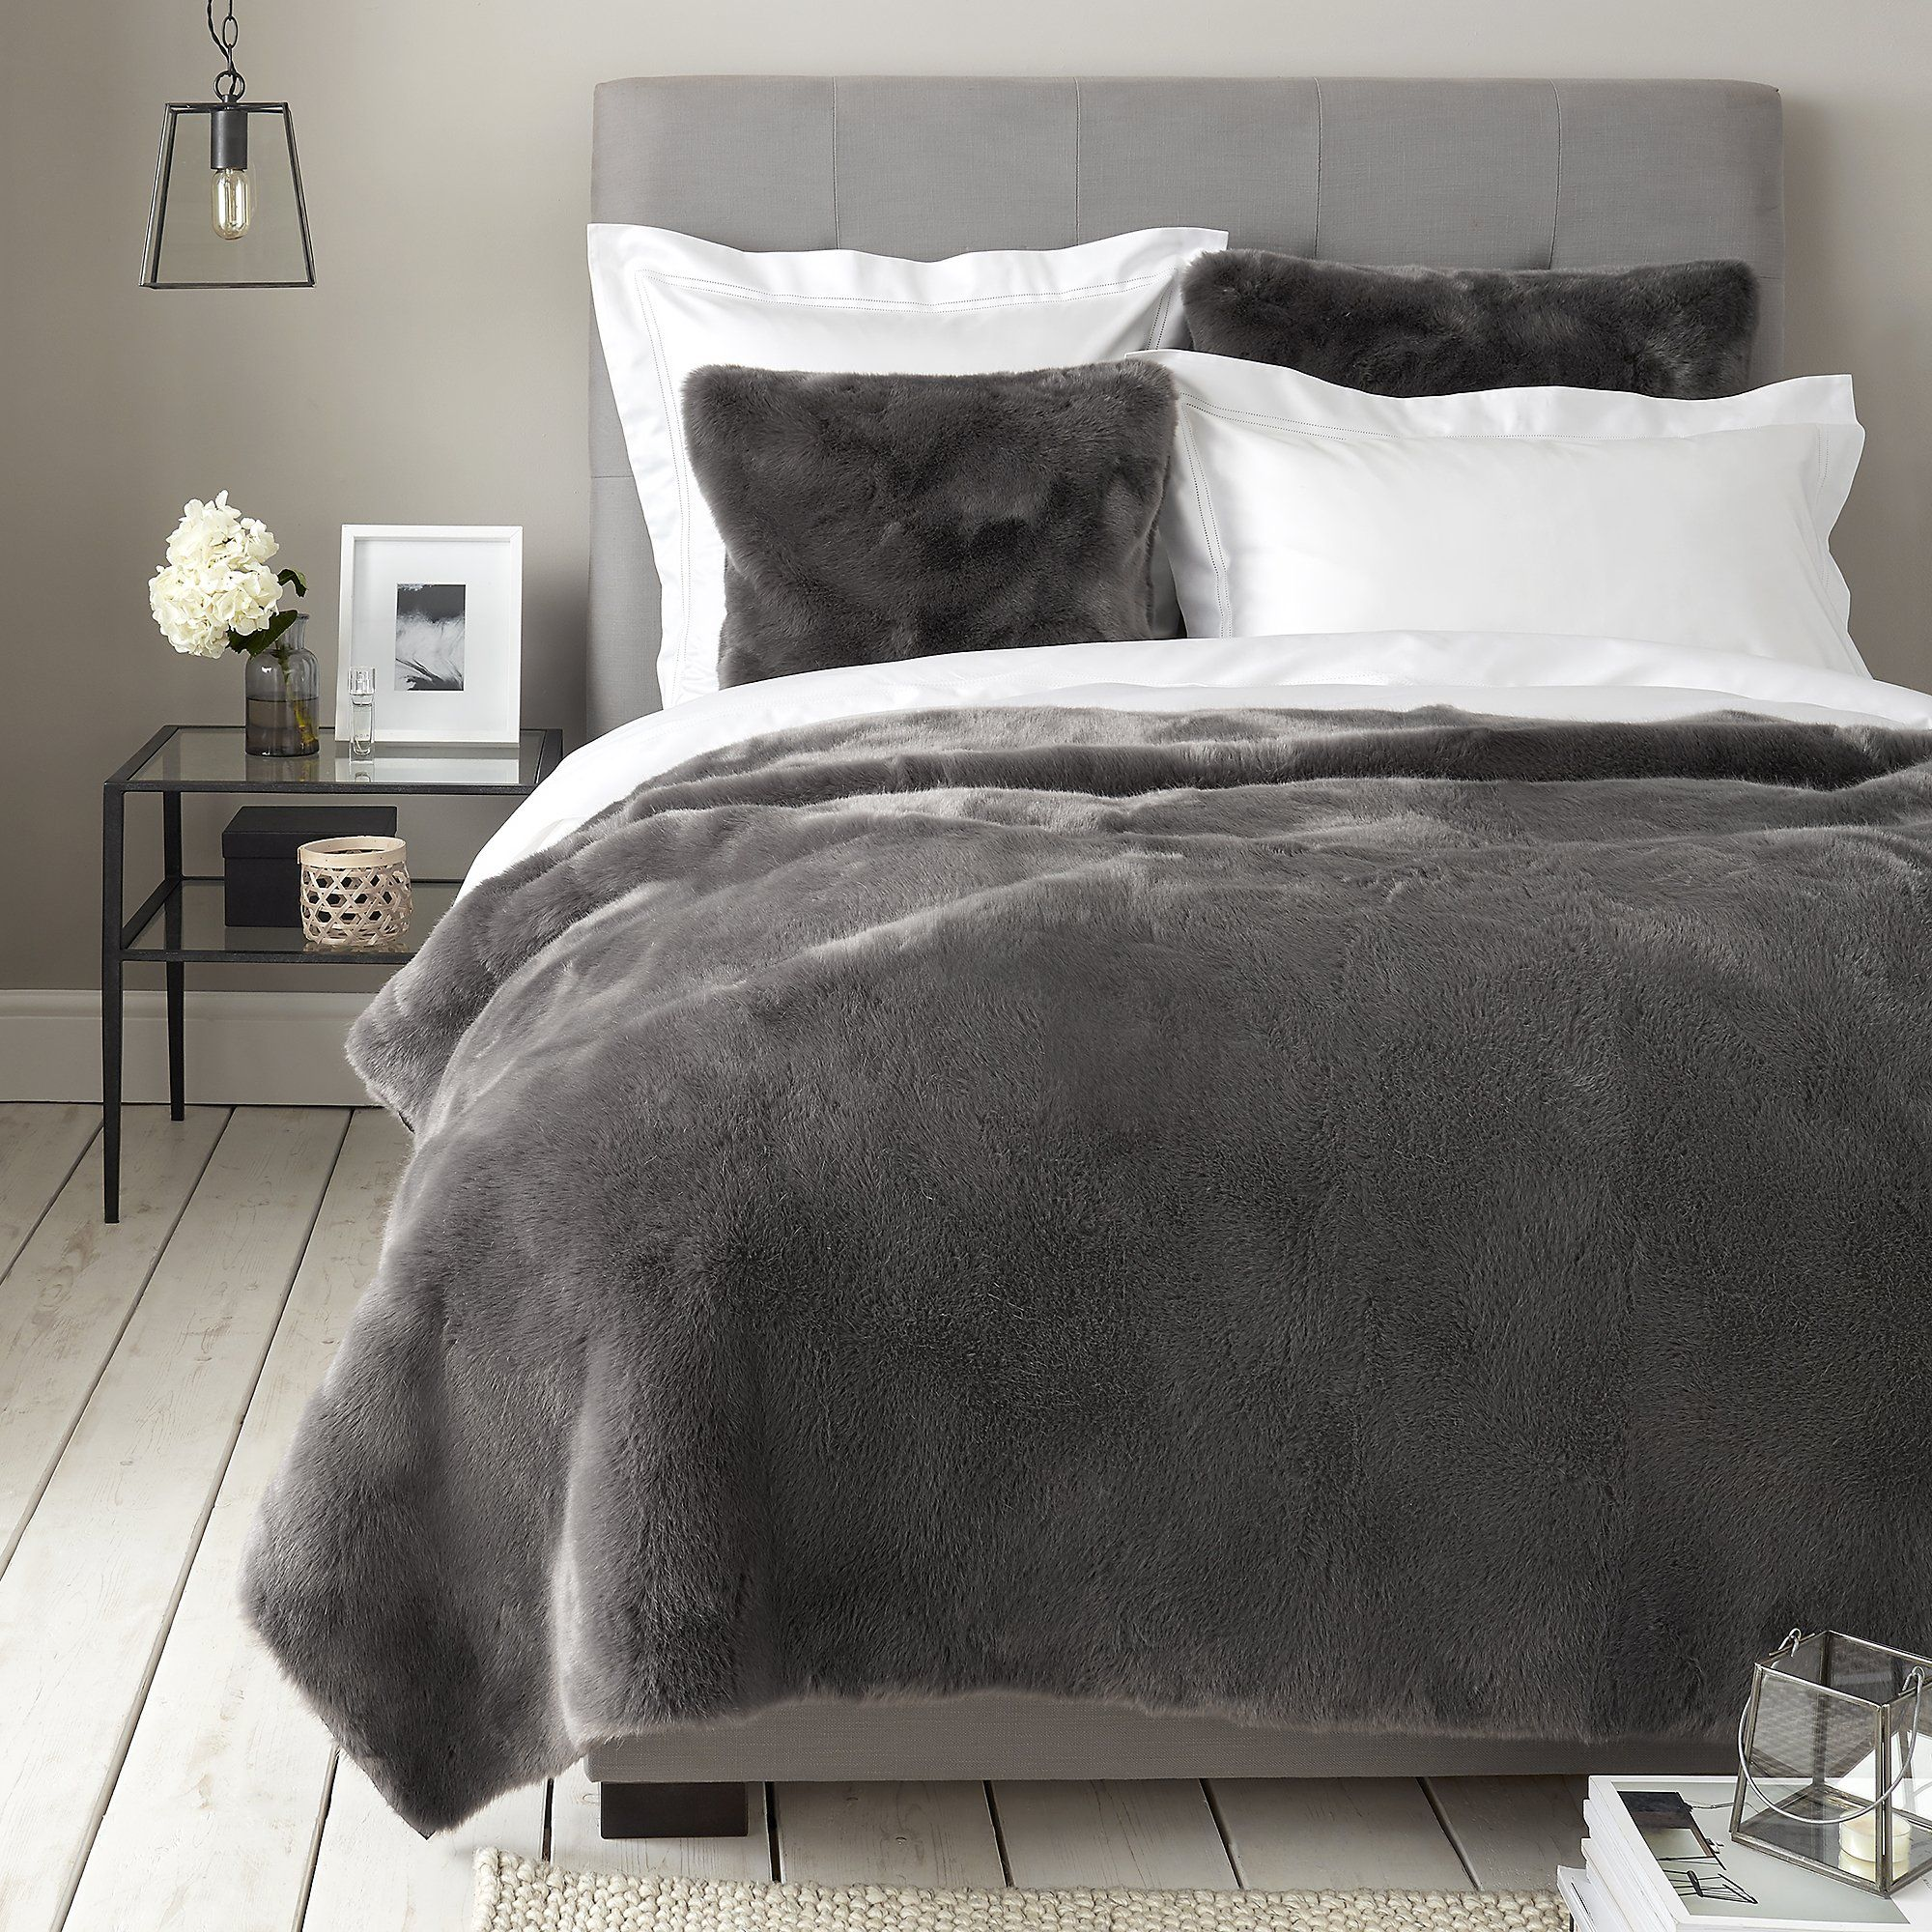 products bed brown wolf decor bedding com decorative lush luca throw faux fur lushdecor pillow